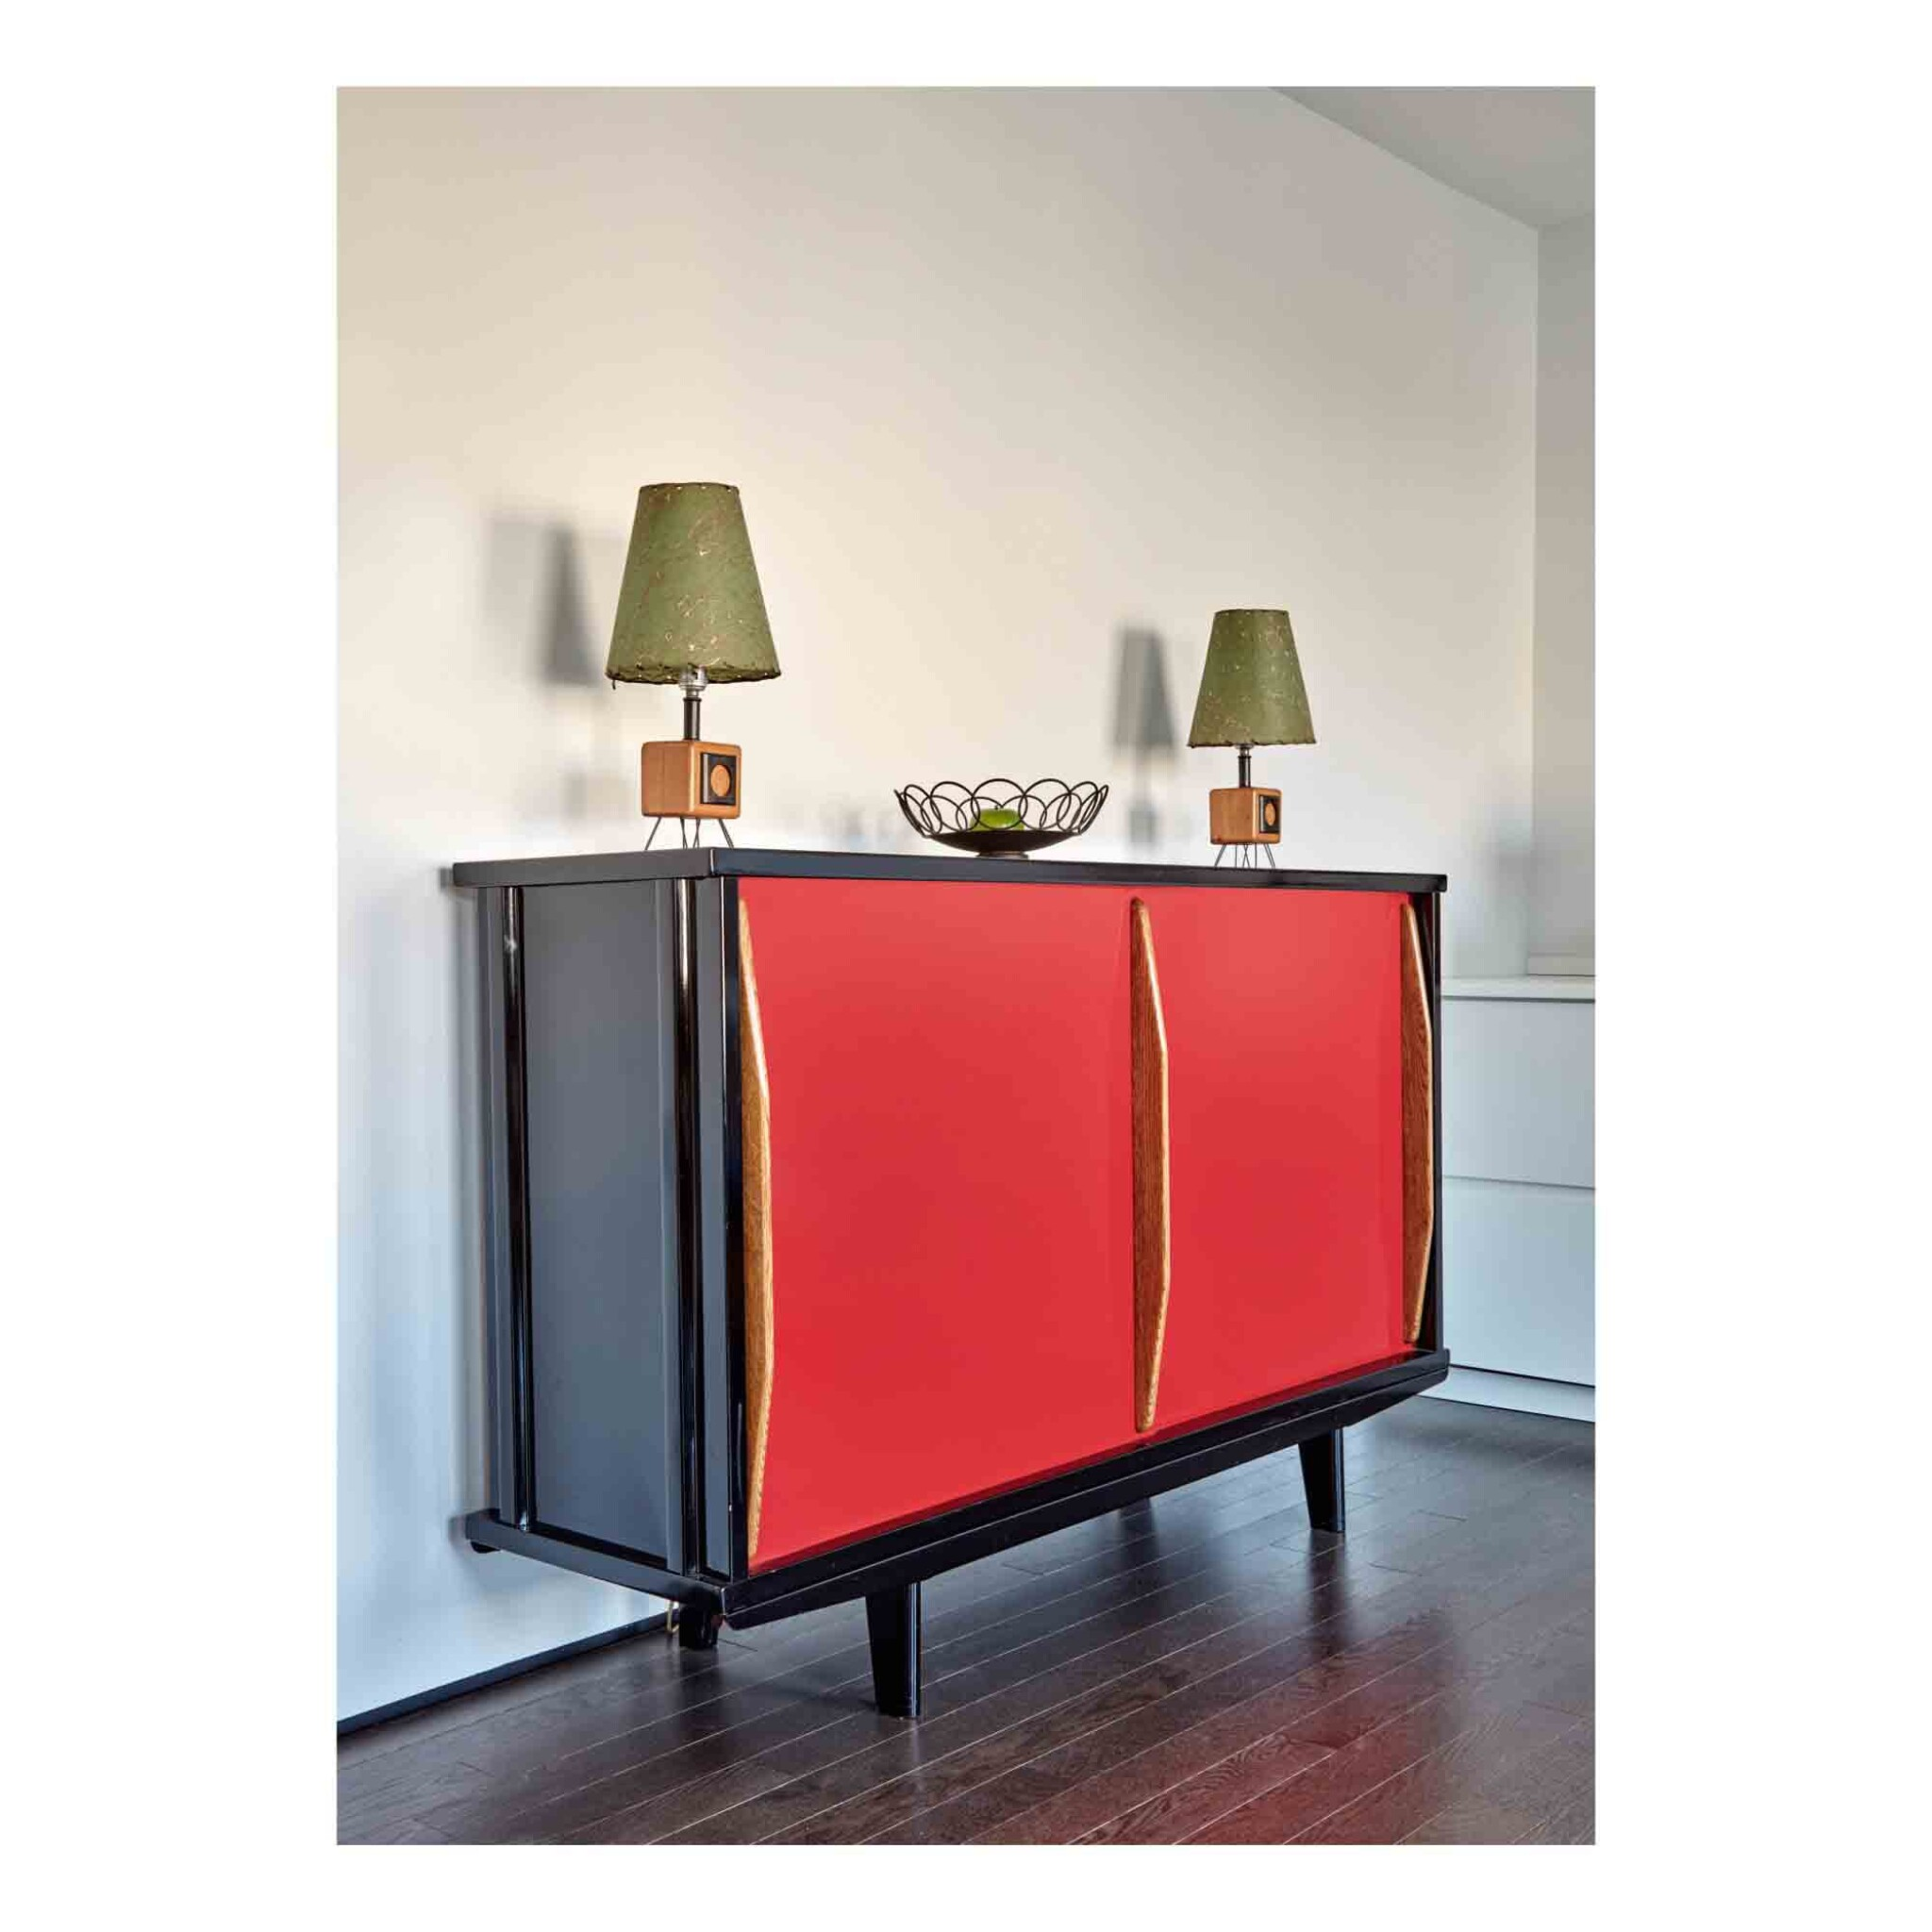 View 1 of Lot 402. Sideboard, Model No. 152.